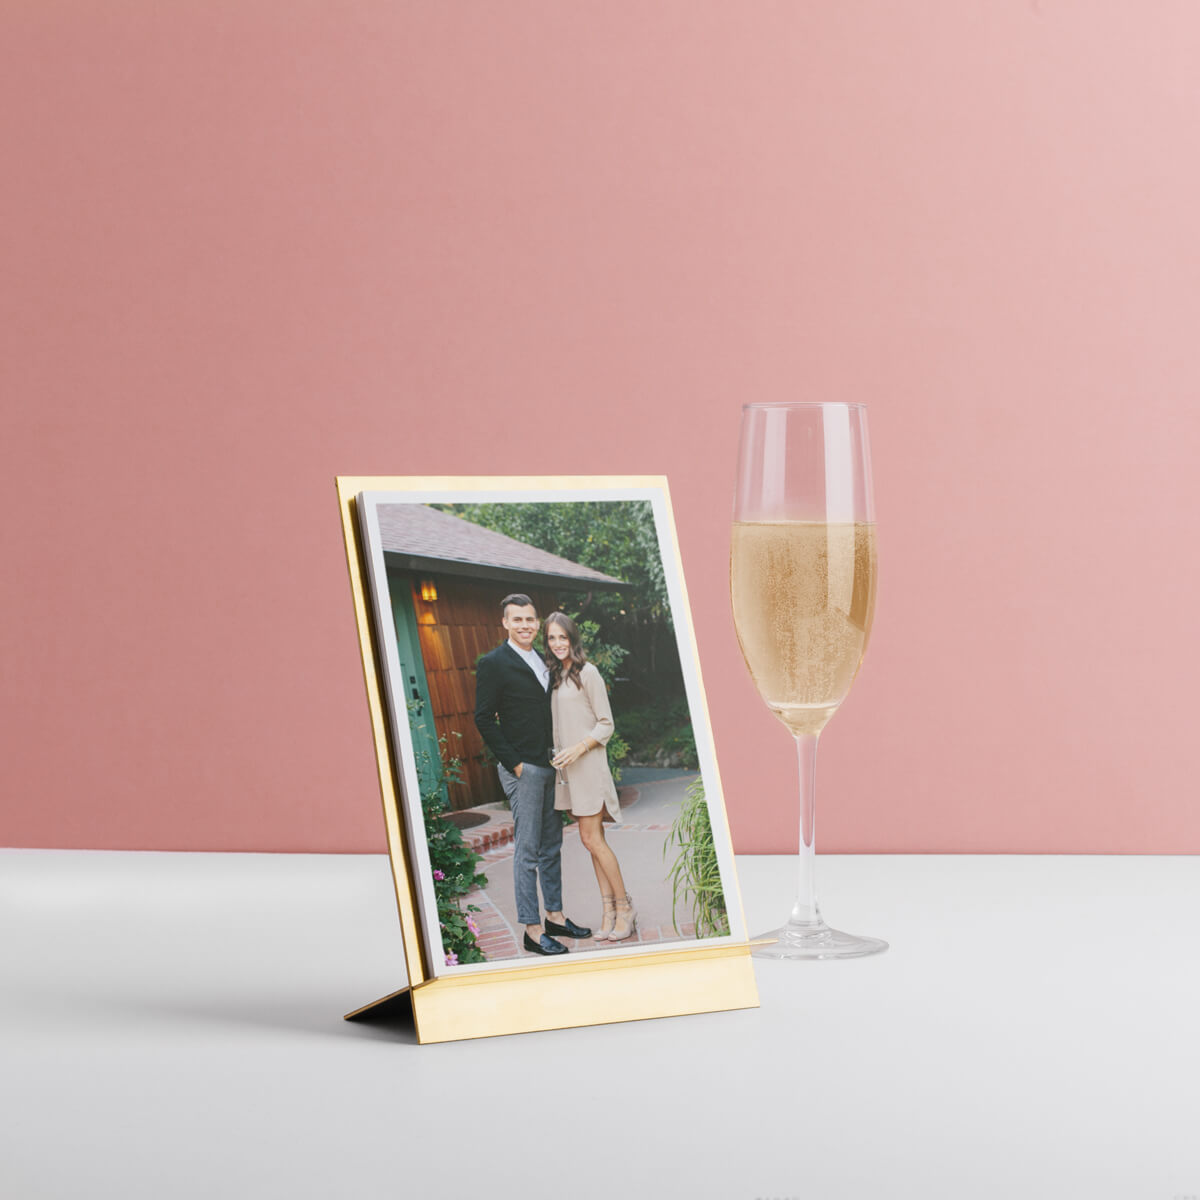 6 Photo Display Ideas for Your Wedding | Artifact Uprising